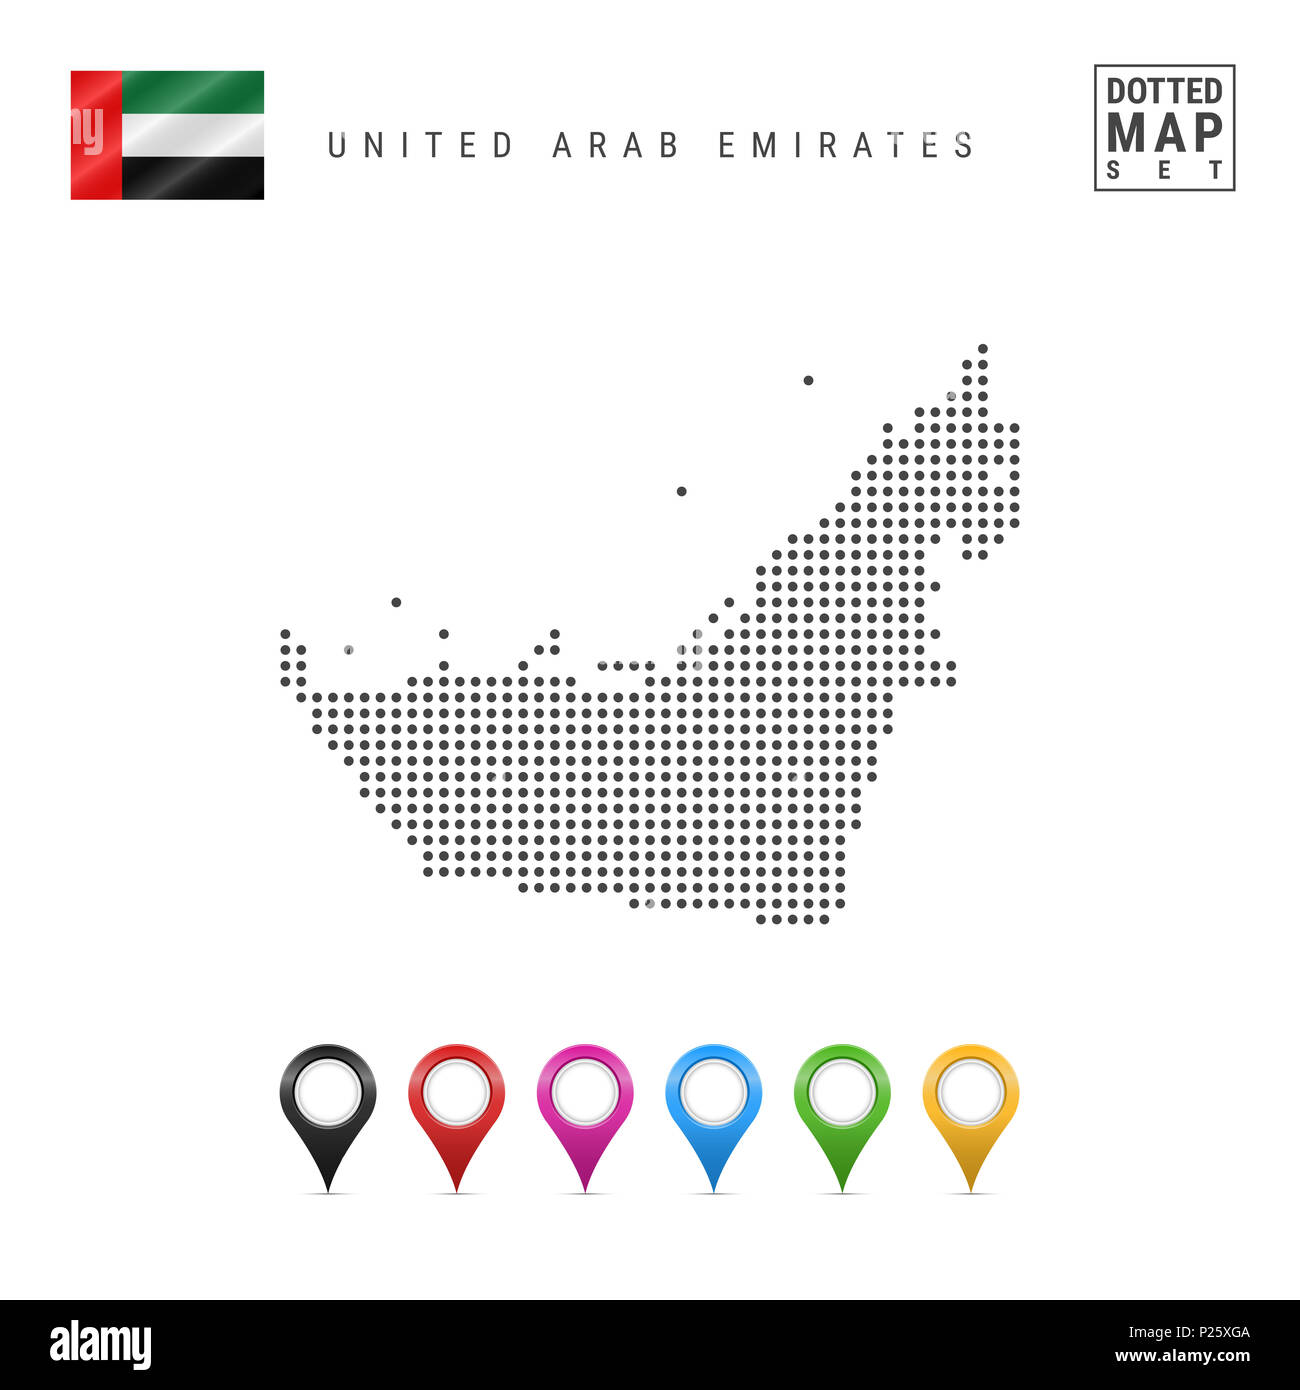 Dotted Map of United Arab Emirates. Simple Silhouette of United Arab Emirates. National Flag of United Arab Emirates. Set of Multicolored Map Markers. - Stock Image